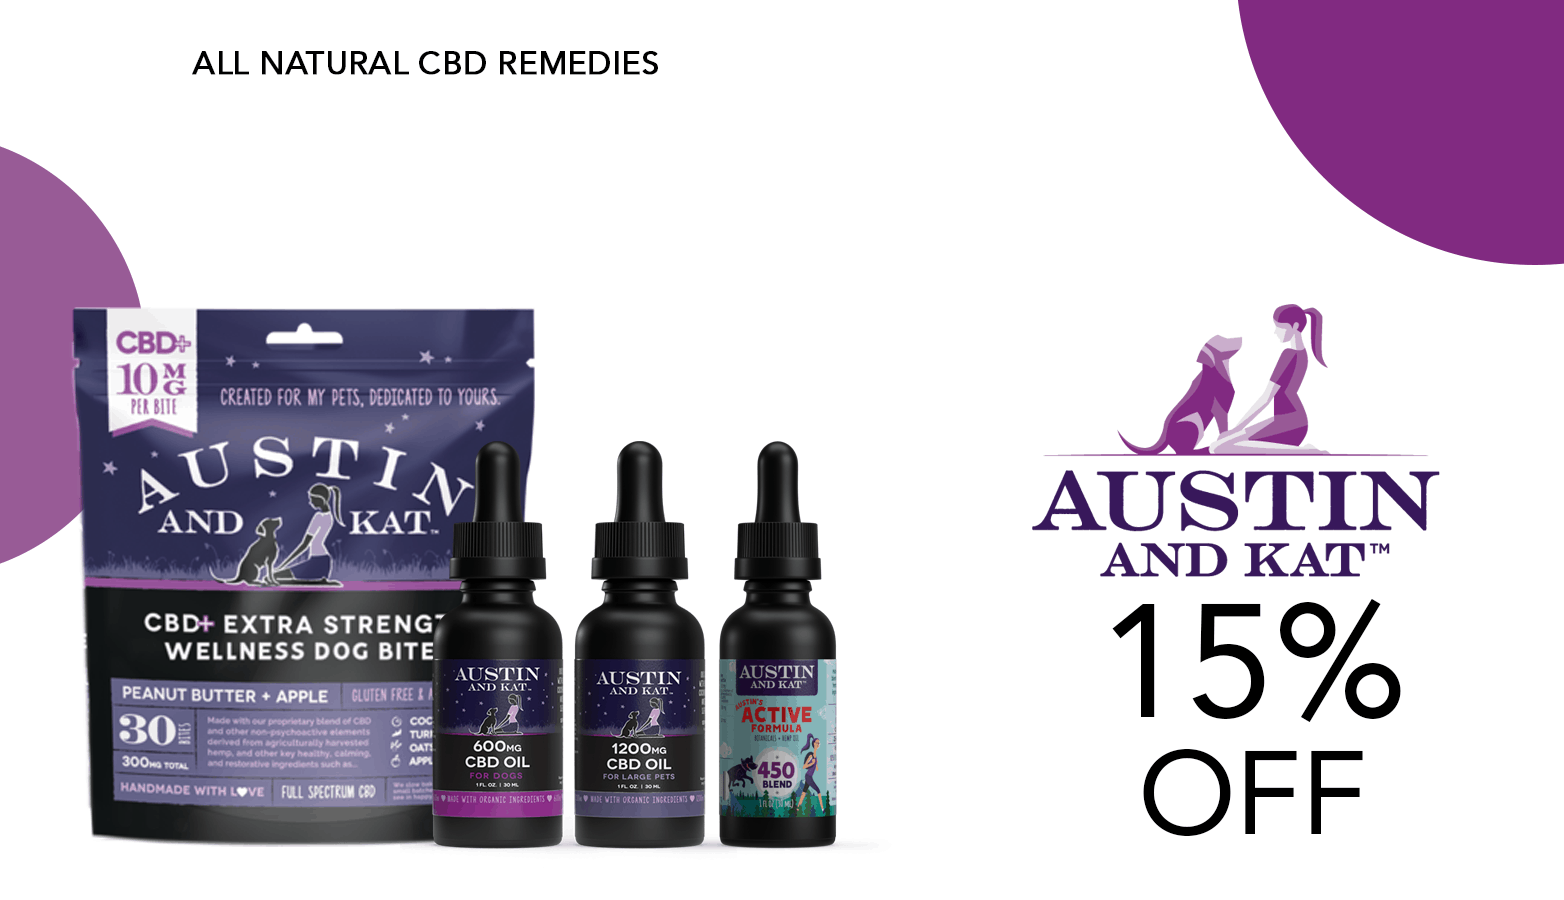 Austin And Kat CBD Pet Coupon Code Offer Website